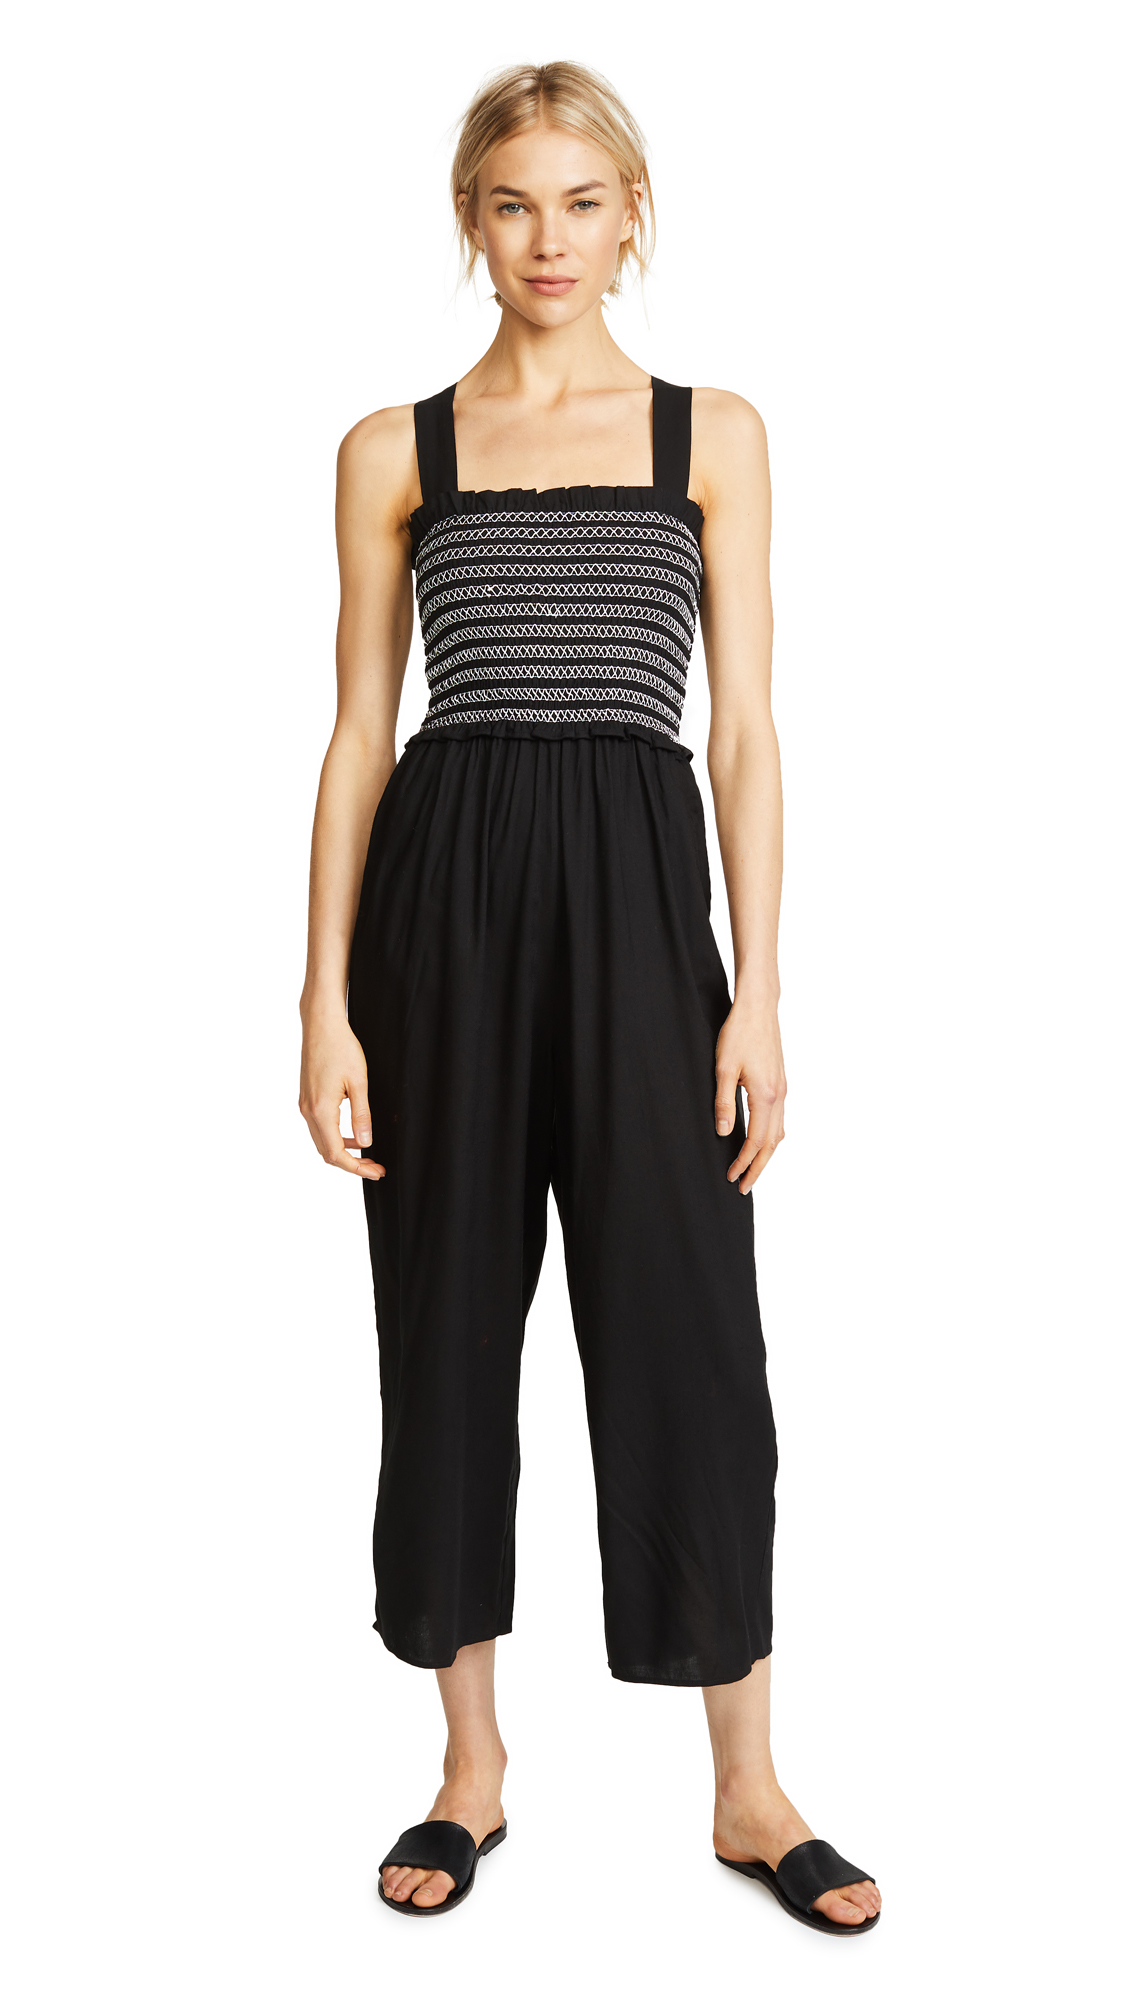 KOS RESORT CROPPED JUMPSUIT